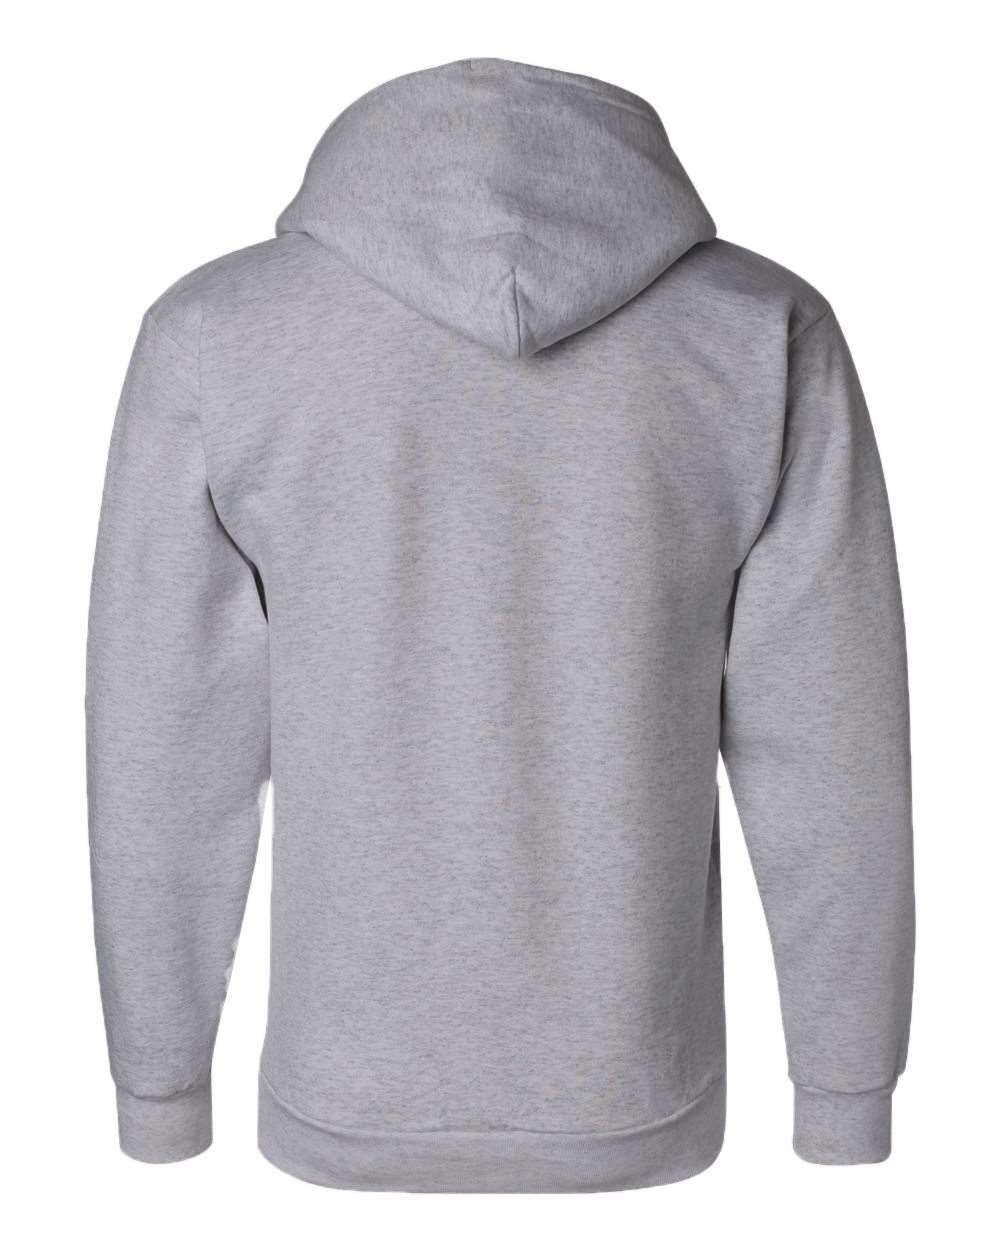 Champion-Mens-Double-Dry-Eco-Hooded-Sweatshirt-Hoodie-Pullover-S700-up-to-3XL miniature 19